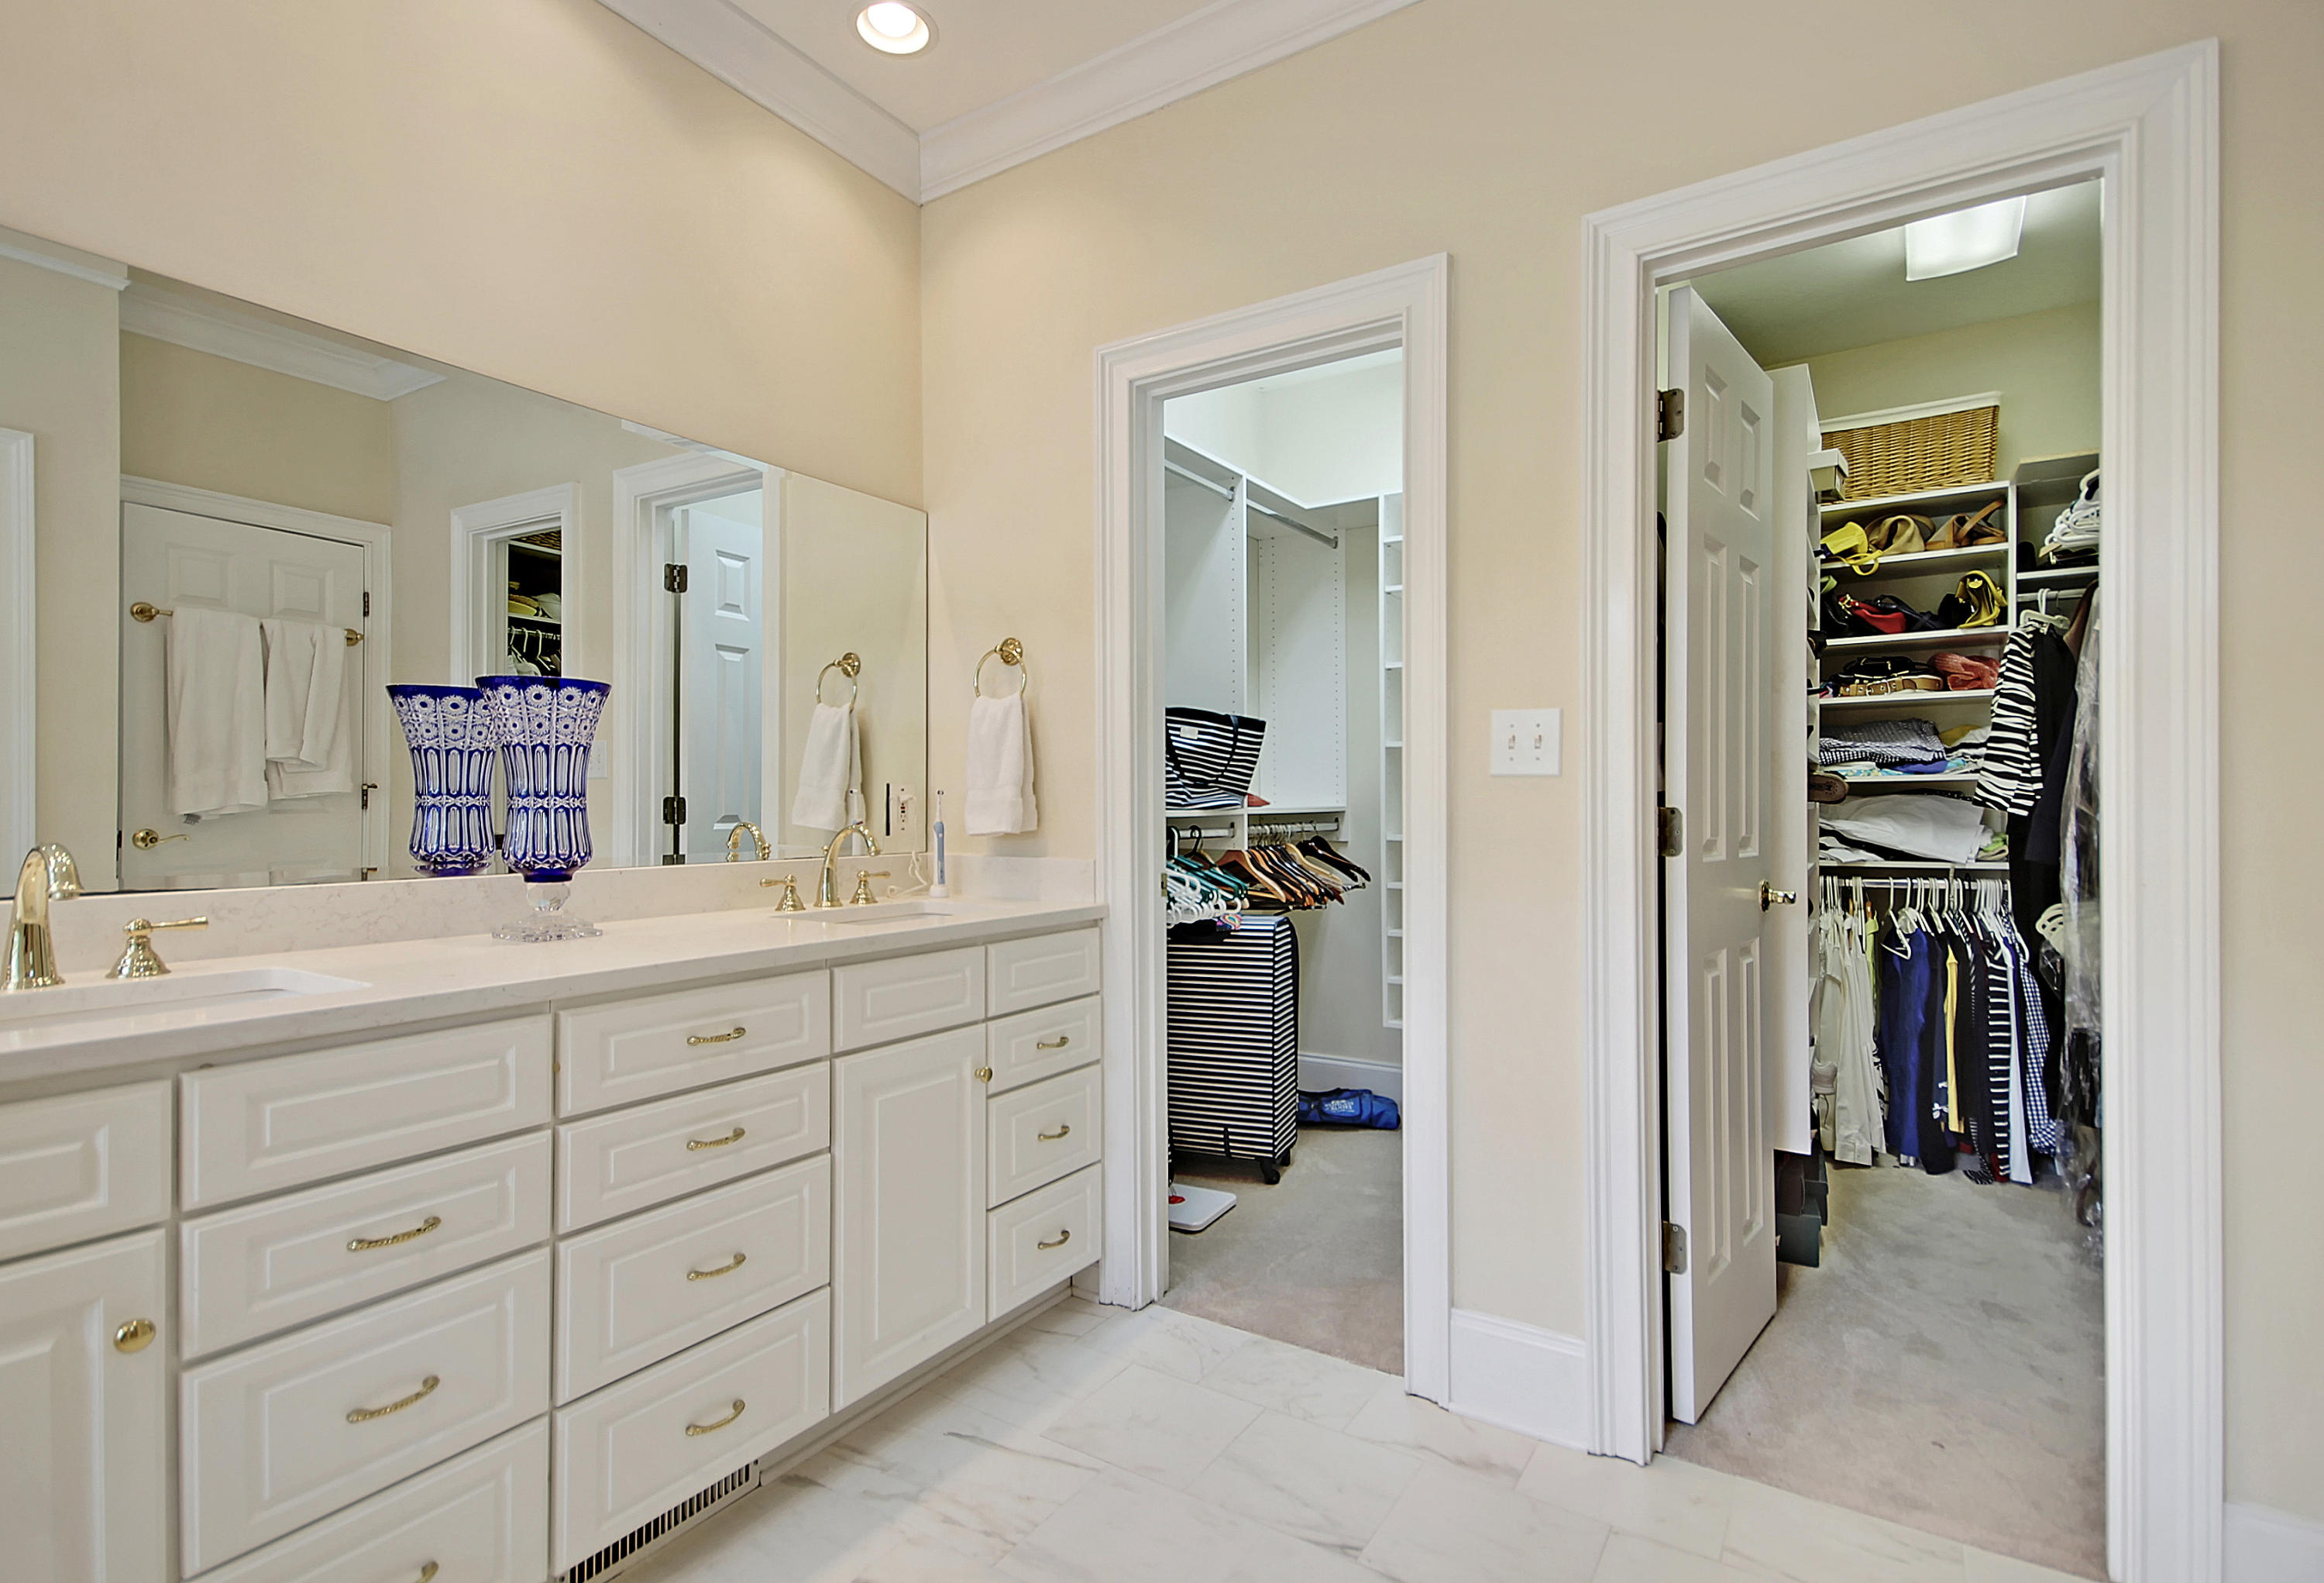 Dunes West Homes For Sale - 1829 Shell Ring, Mount Pleasant, SC - 15